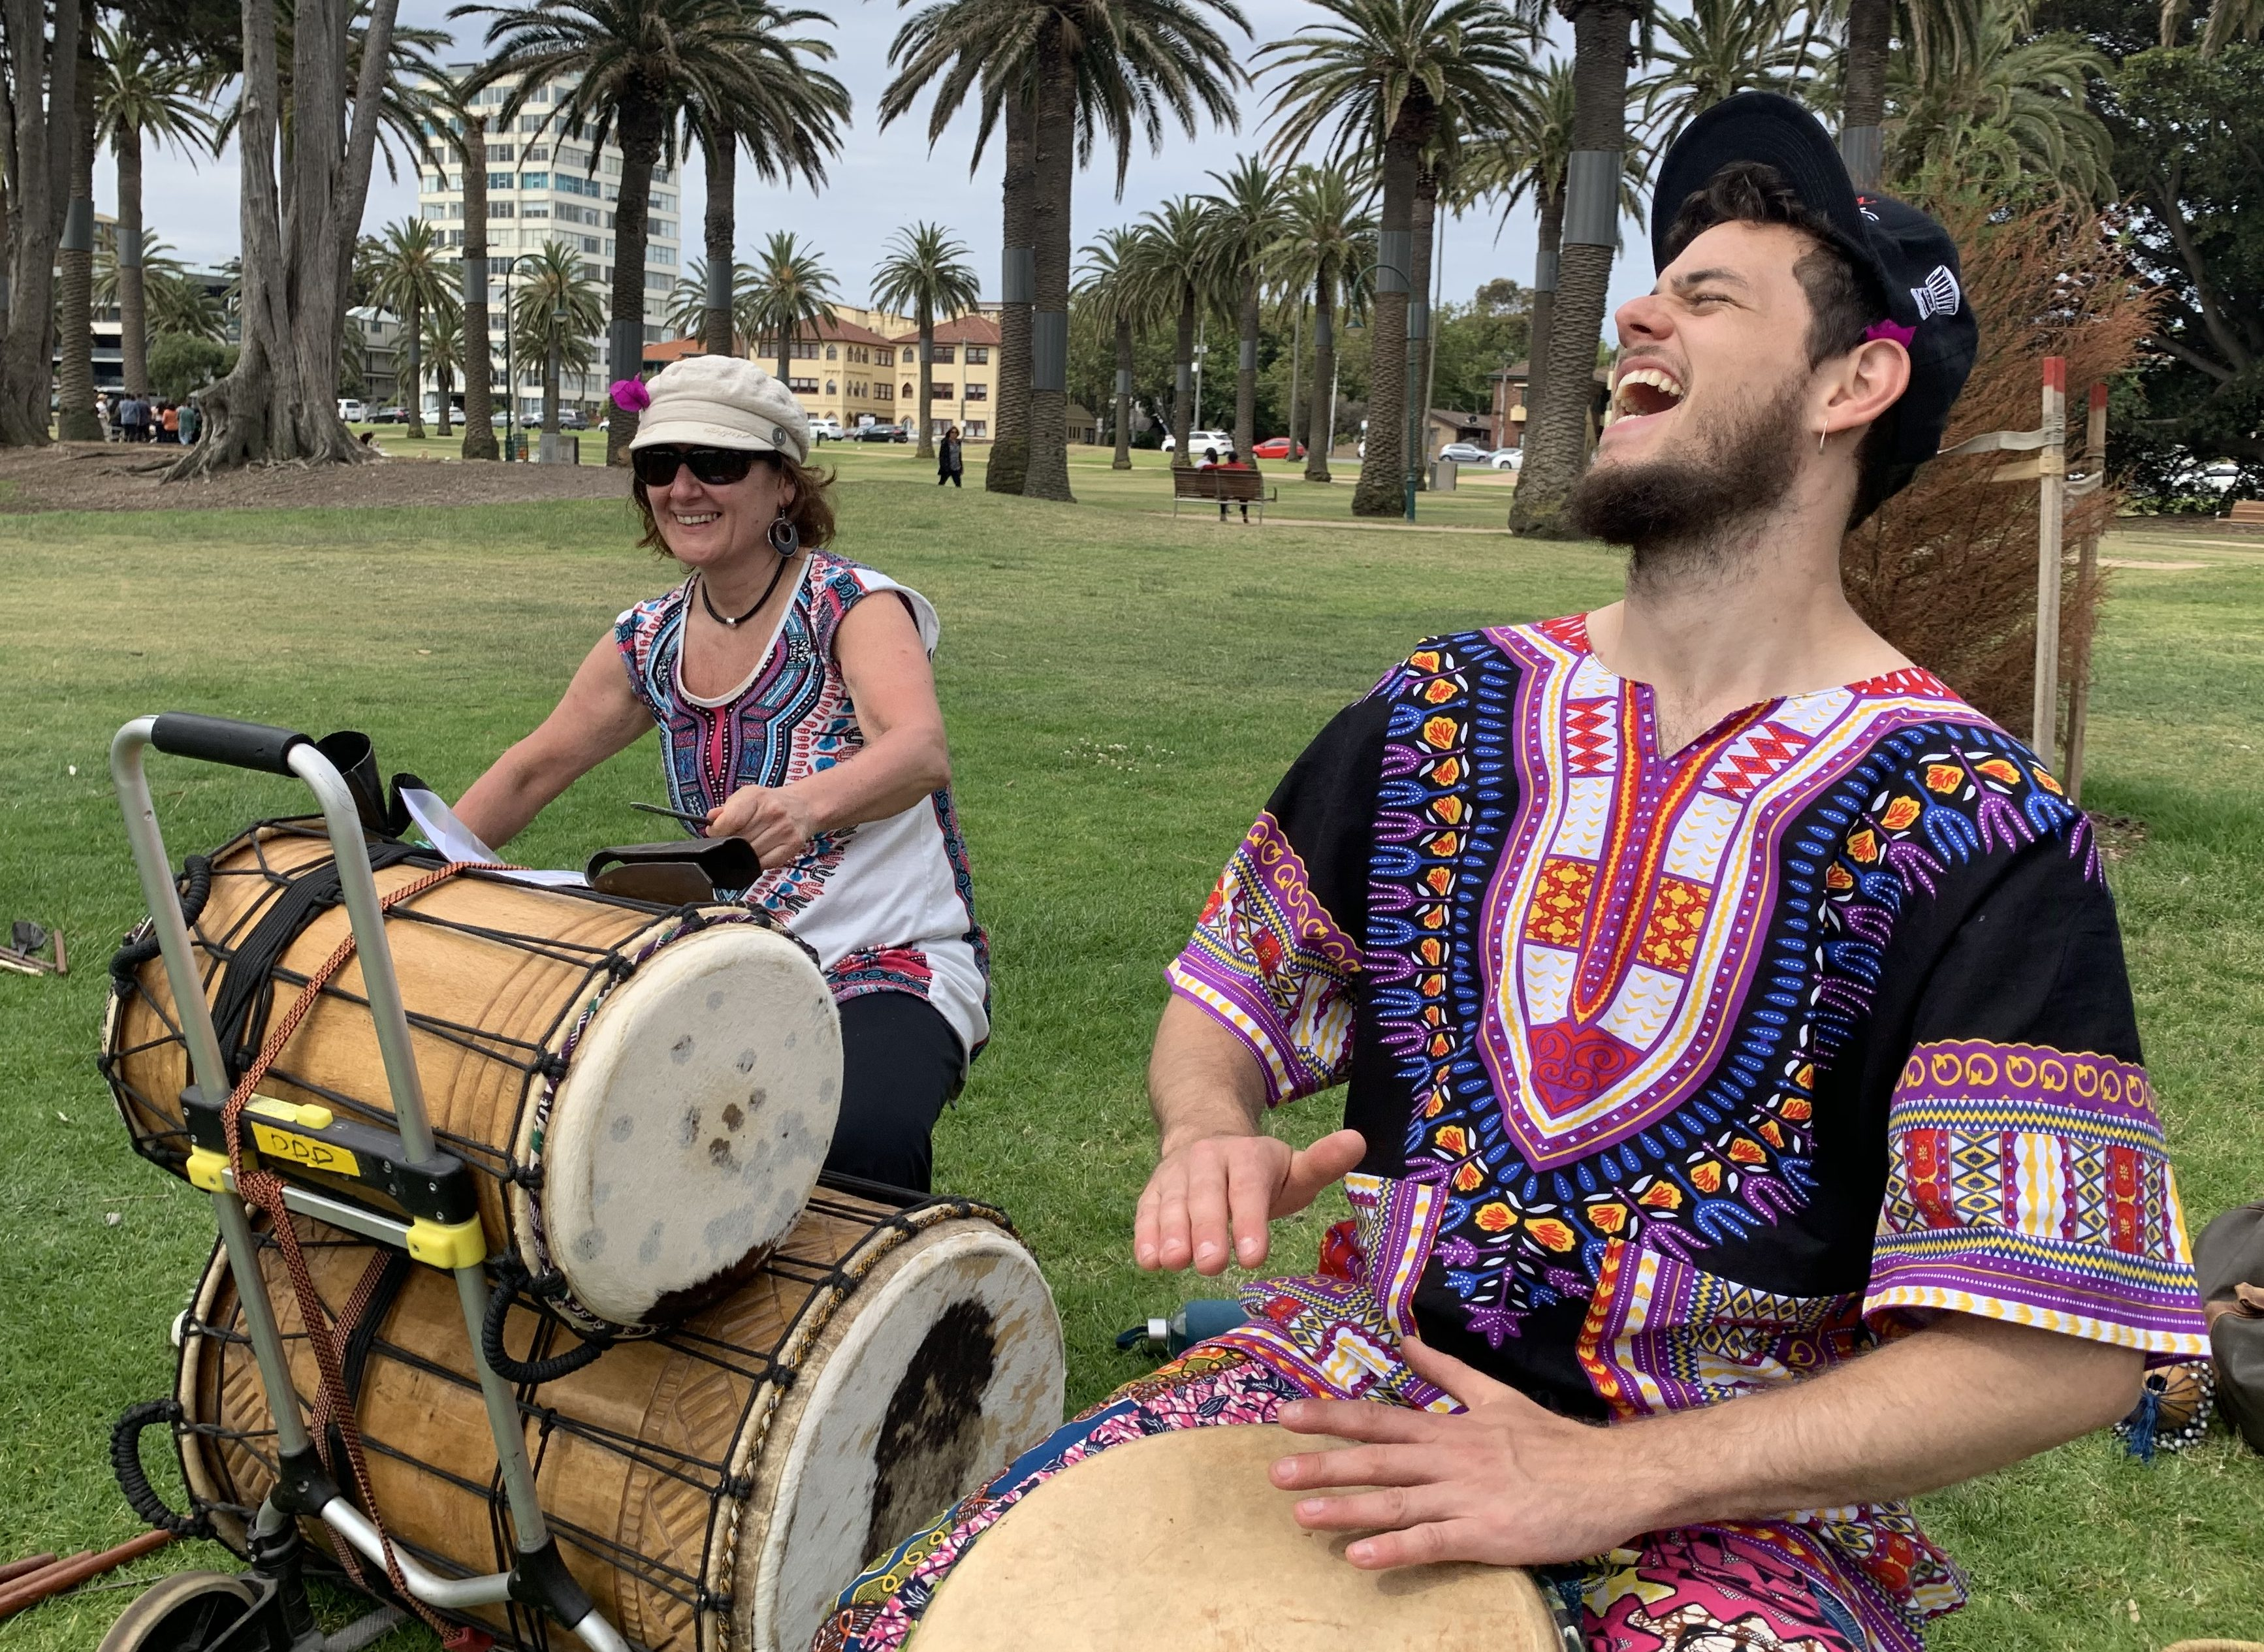 Our St Kilda community djembe classes are back on Monday November 2nd. Classes are limited to 10 students. Register online.